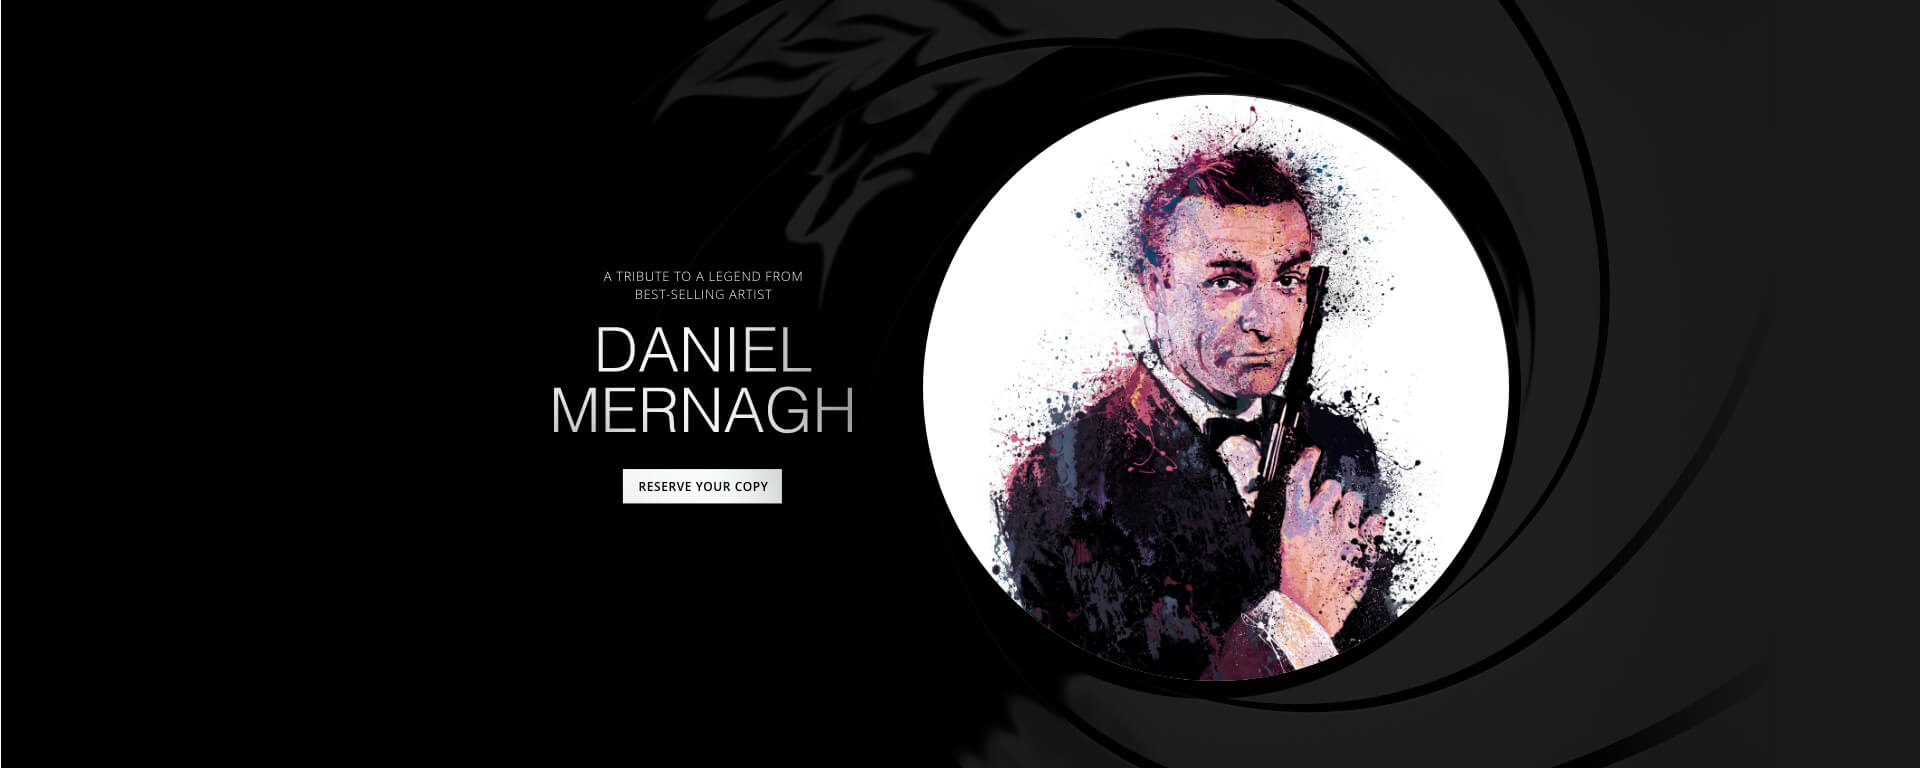 007 – With Love, by Daniel Mernagh